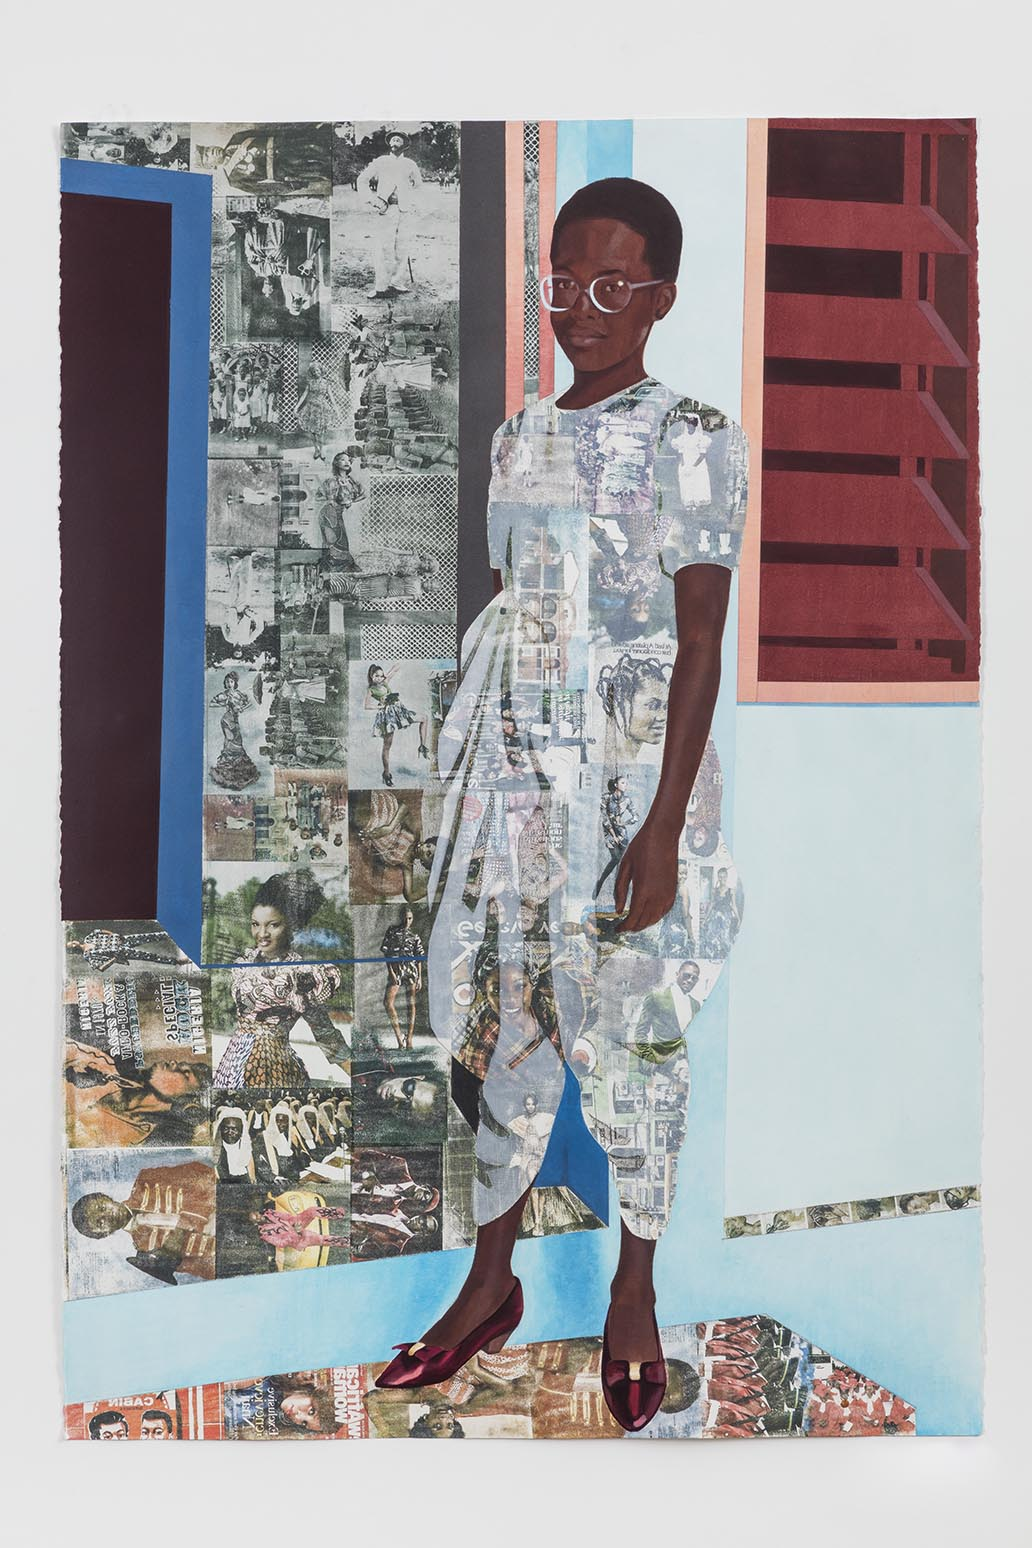 Njideka Akunyili Crosby, The Beautyful Ones no.1, 2015. Acrylic, pastel, colored pencils, and Xerox transfers on paper. 60 x 42 inches. Courtesy of the artist and Victoria Miro, London. Photo by Jason Wyche.